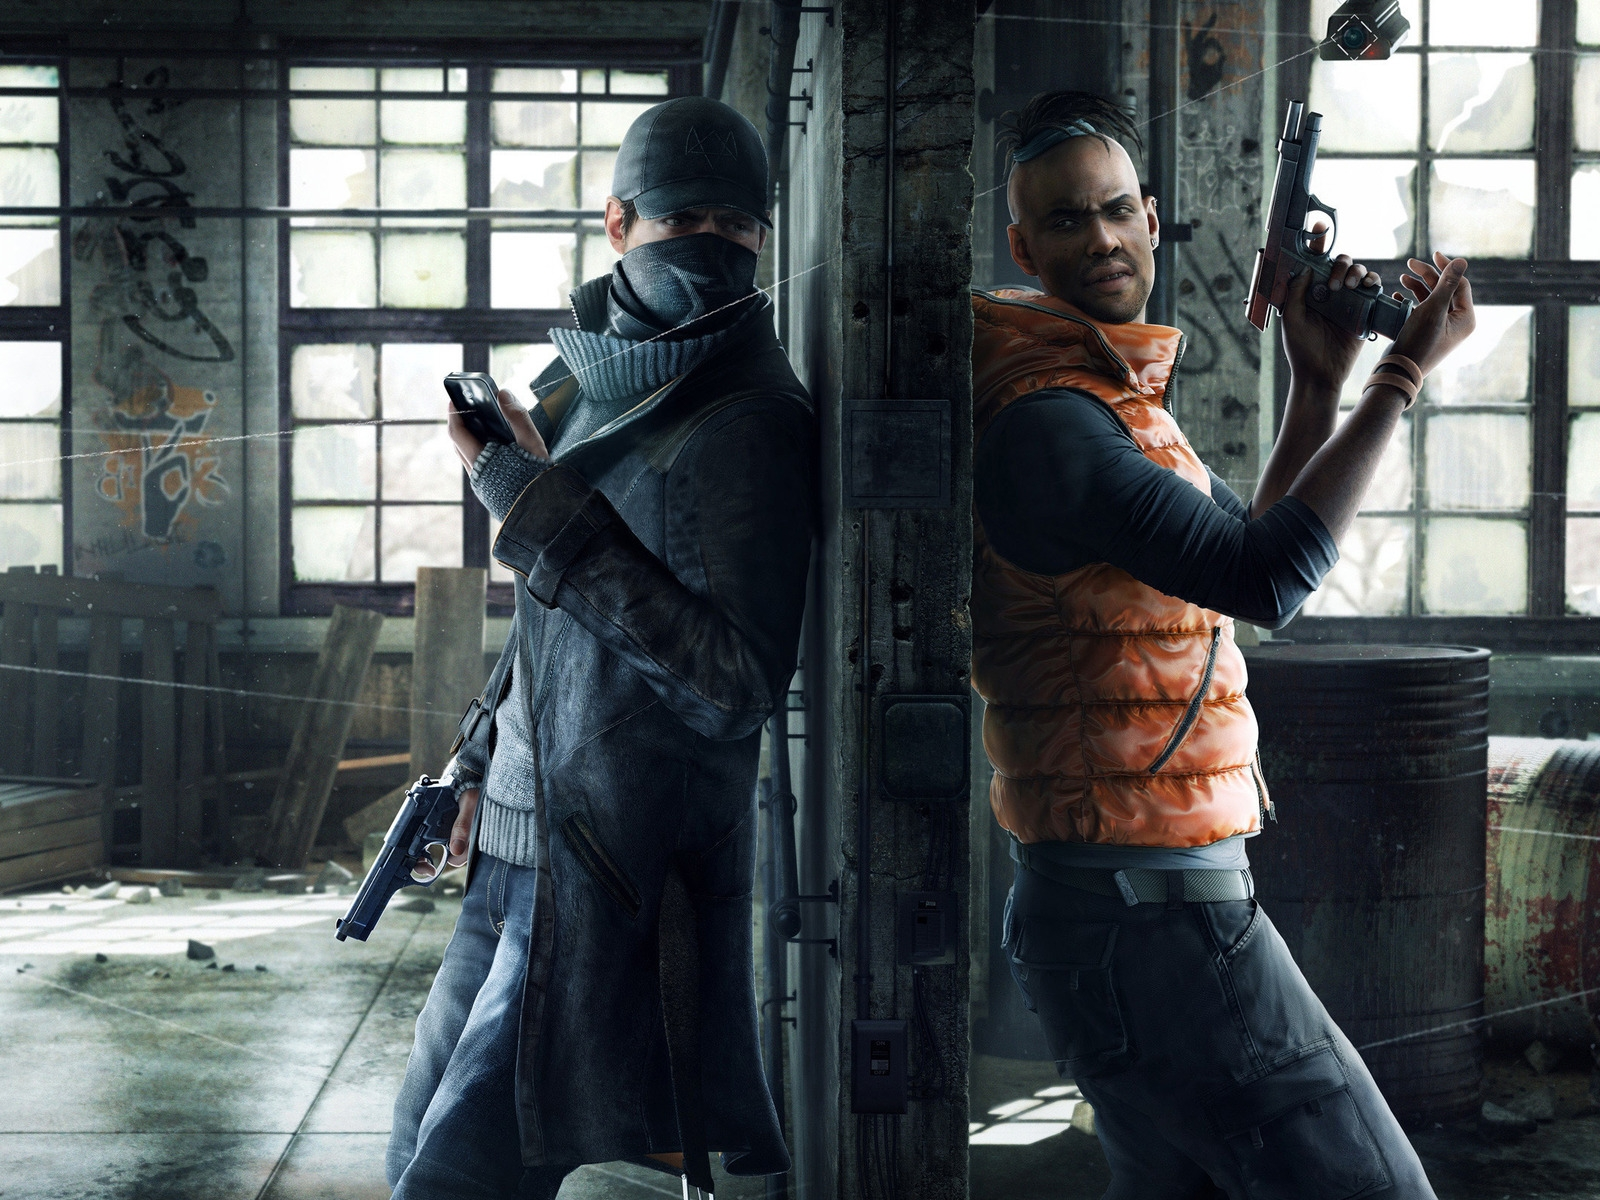 Watchdogs Aiden and Wade for 1600 x 1200 resolution